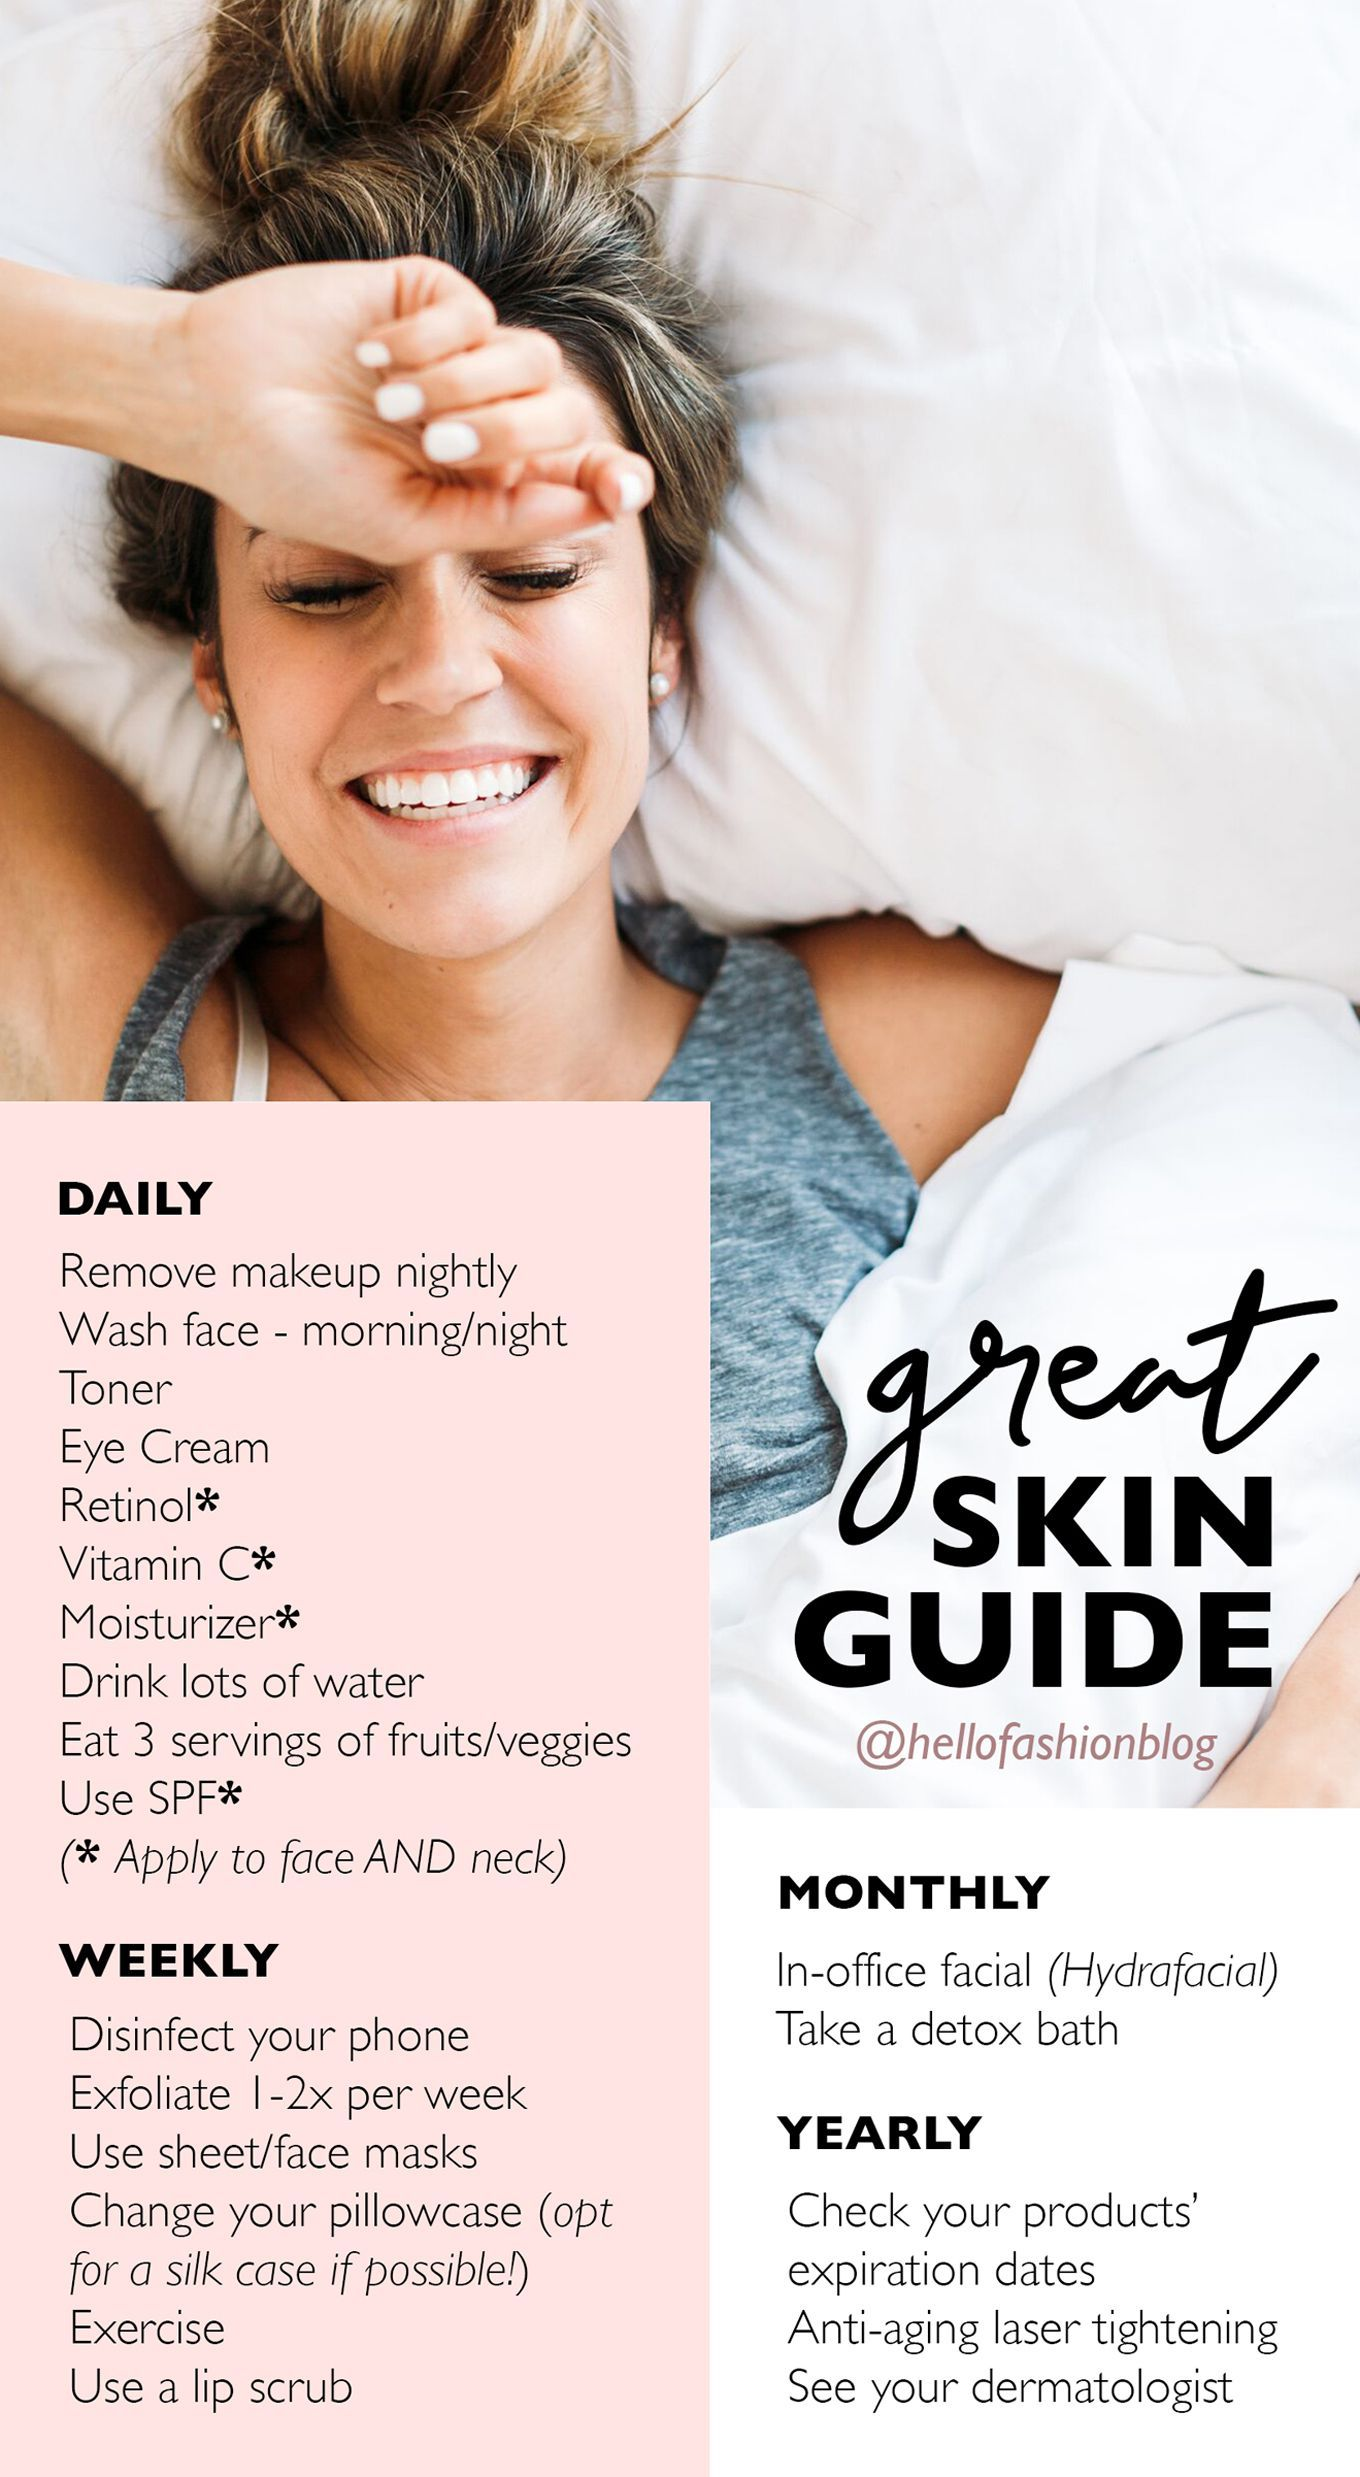 The Guide to Great Skin  Natural skin care, Healthy skin, Natural